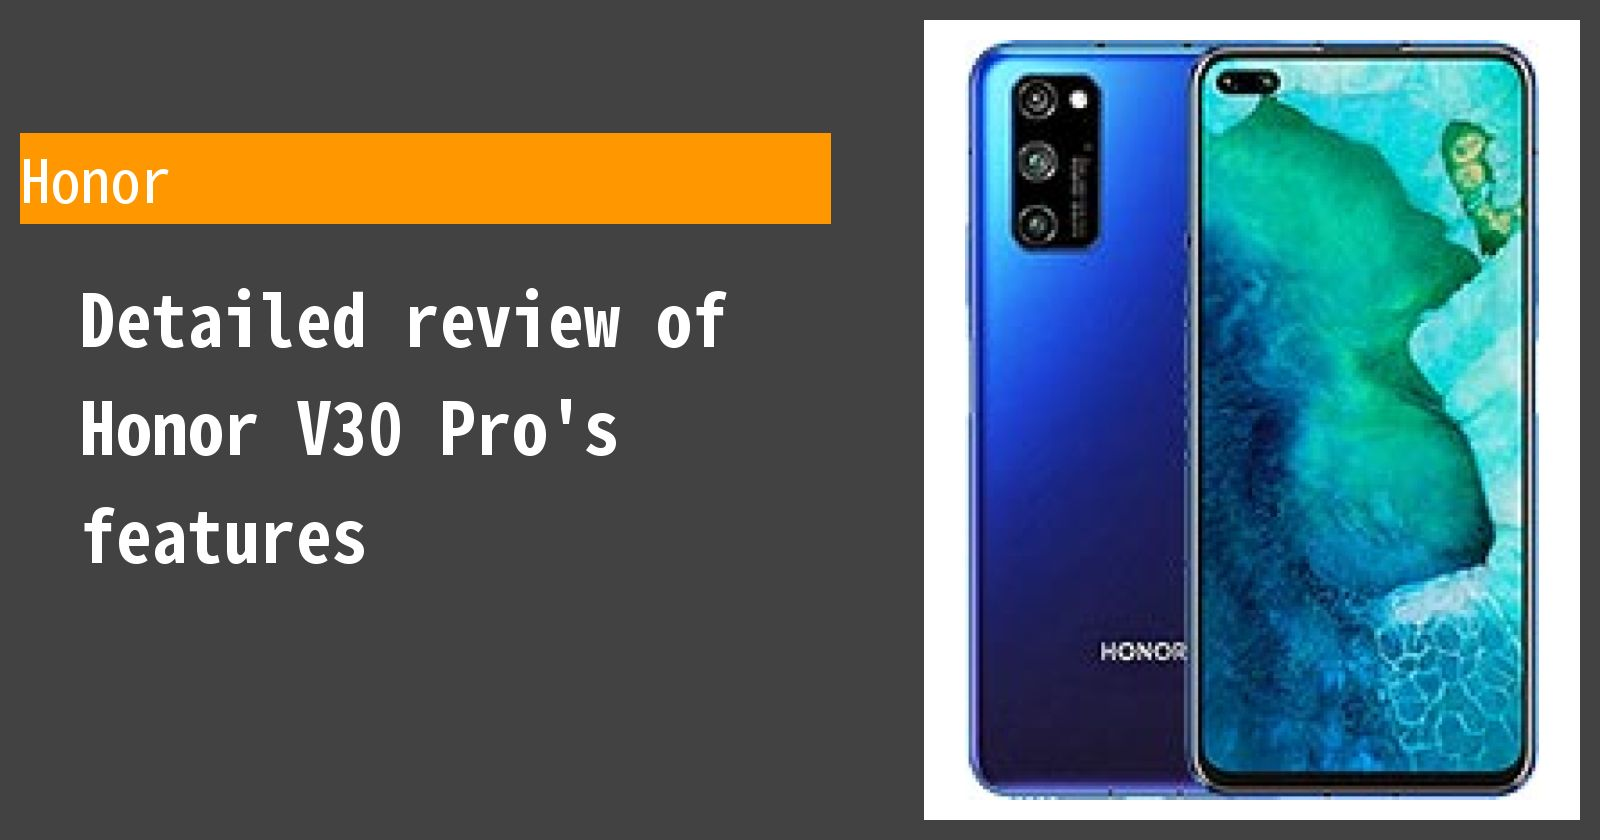 Detailed review of Honor V30 Pro's features